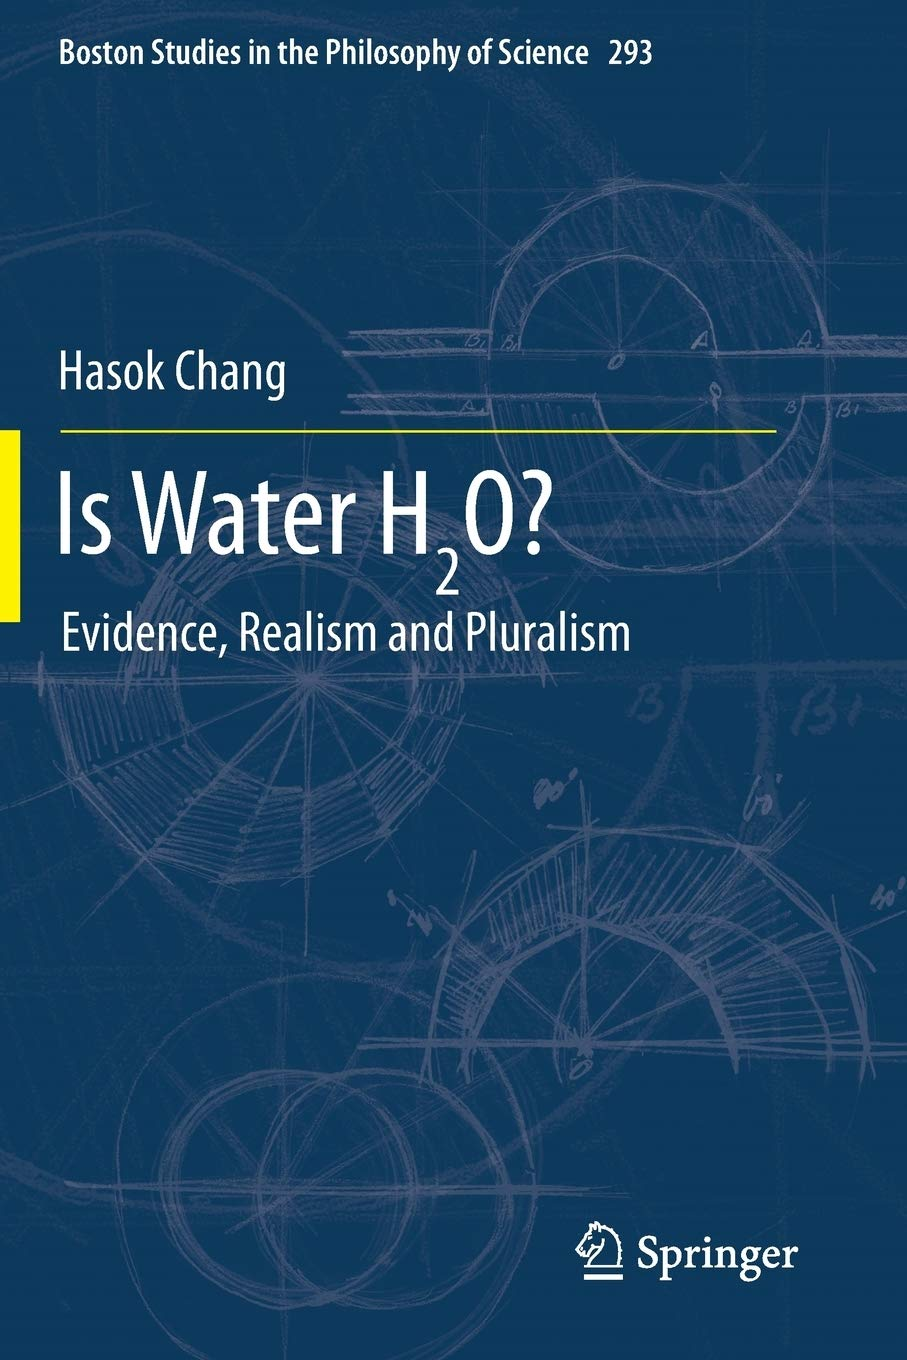 Is Water H2O?: Evidence, Realism and Pluralism: 293 Boston Studies in the Philosophy and History of Science: Amazon.es: Chang, Hasok: Libros en idiomas extranjeros